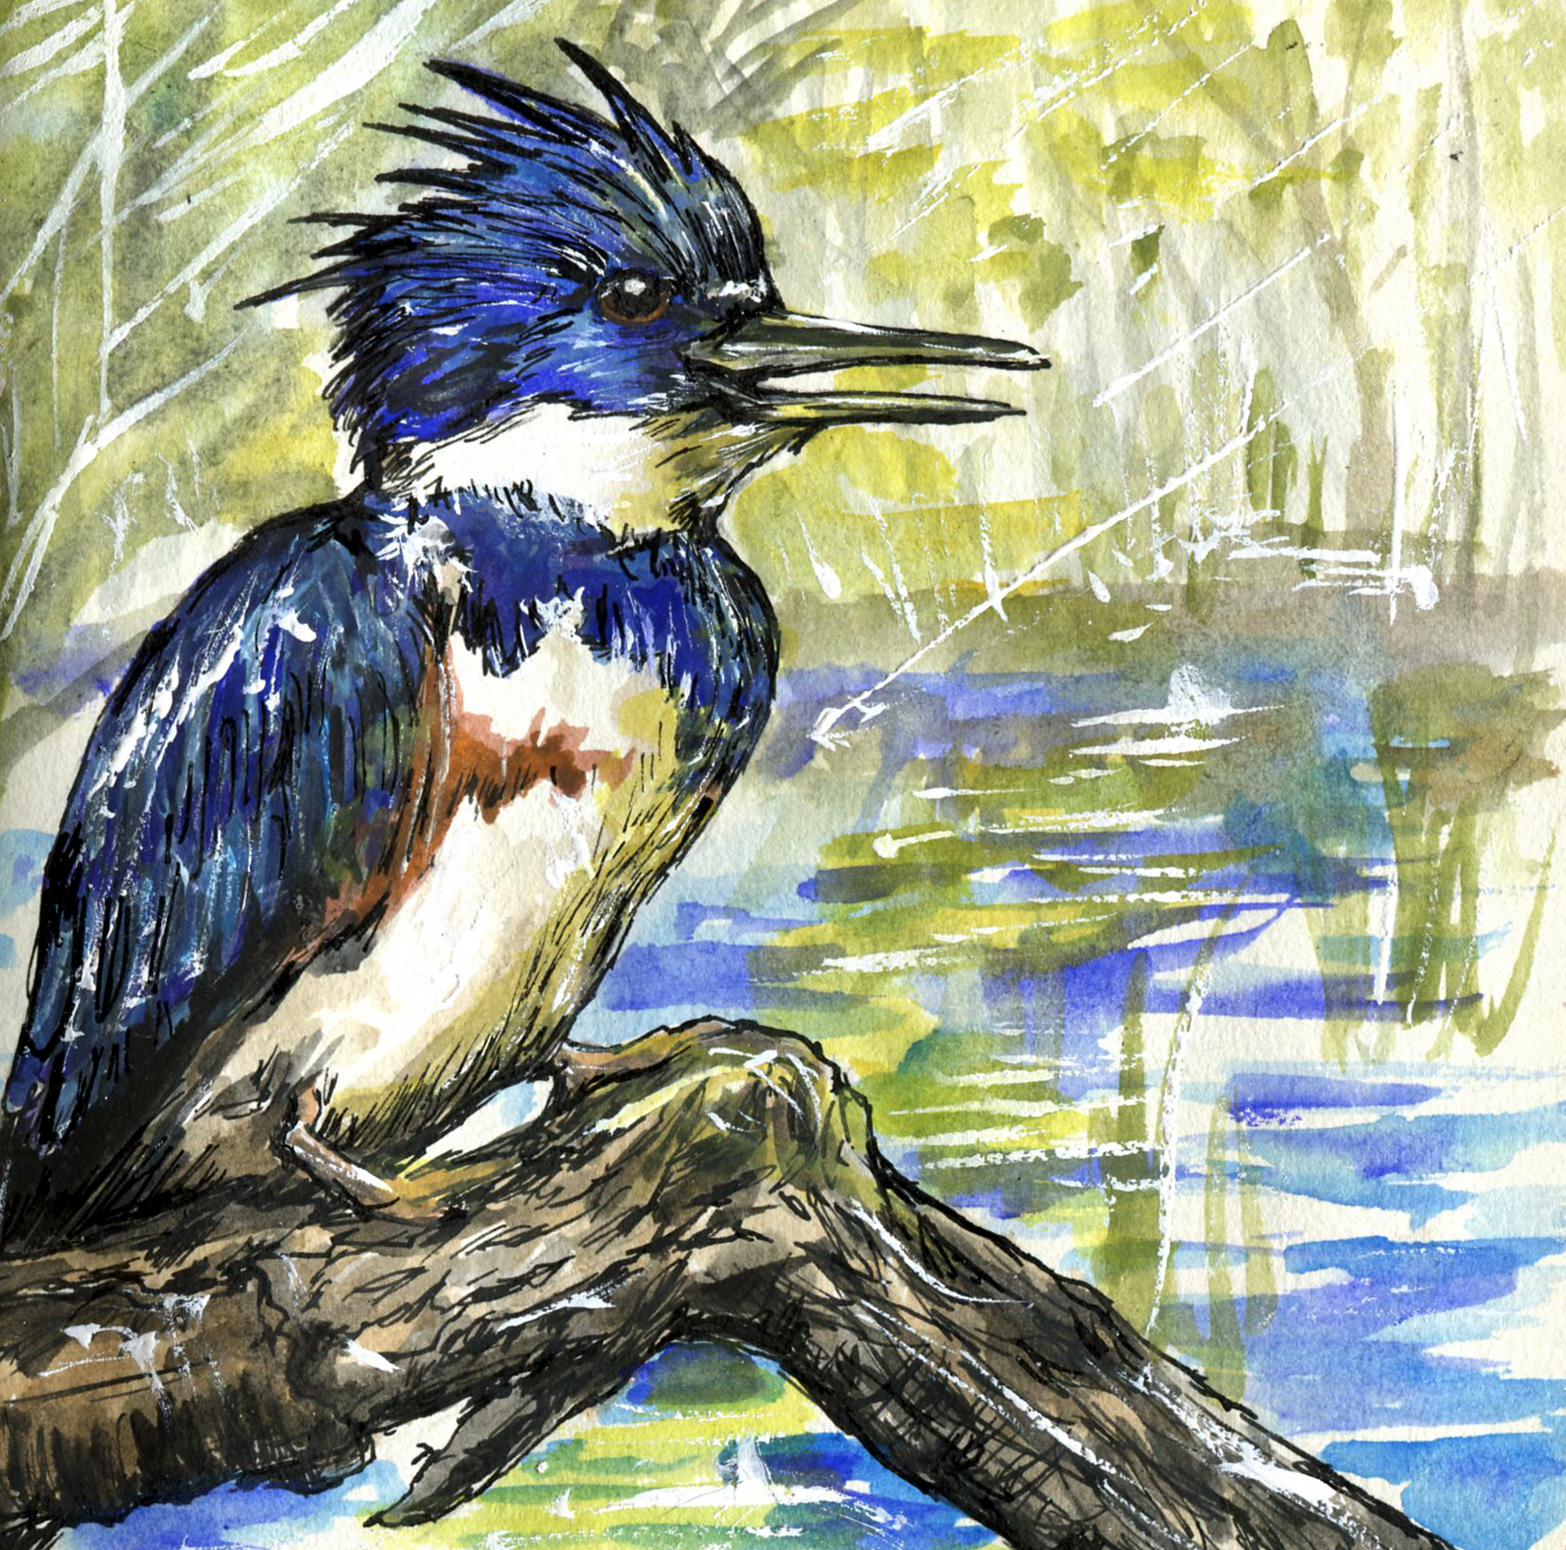 48. Belted Kingfisher